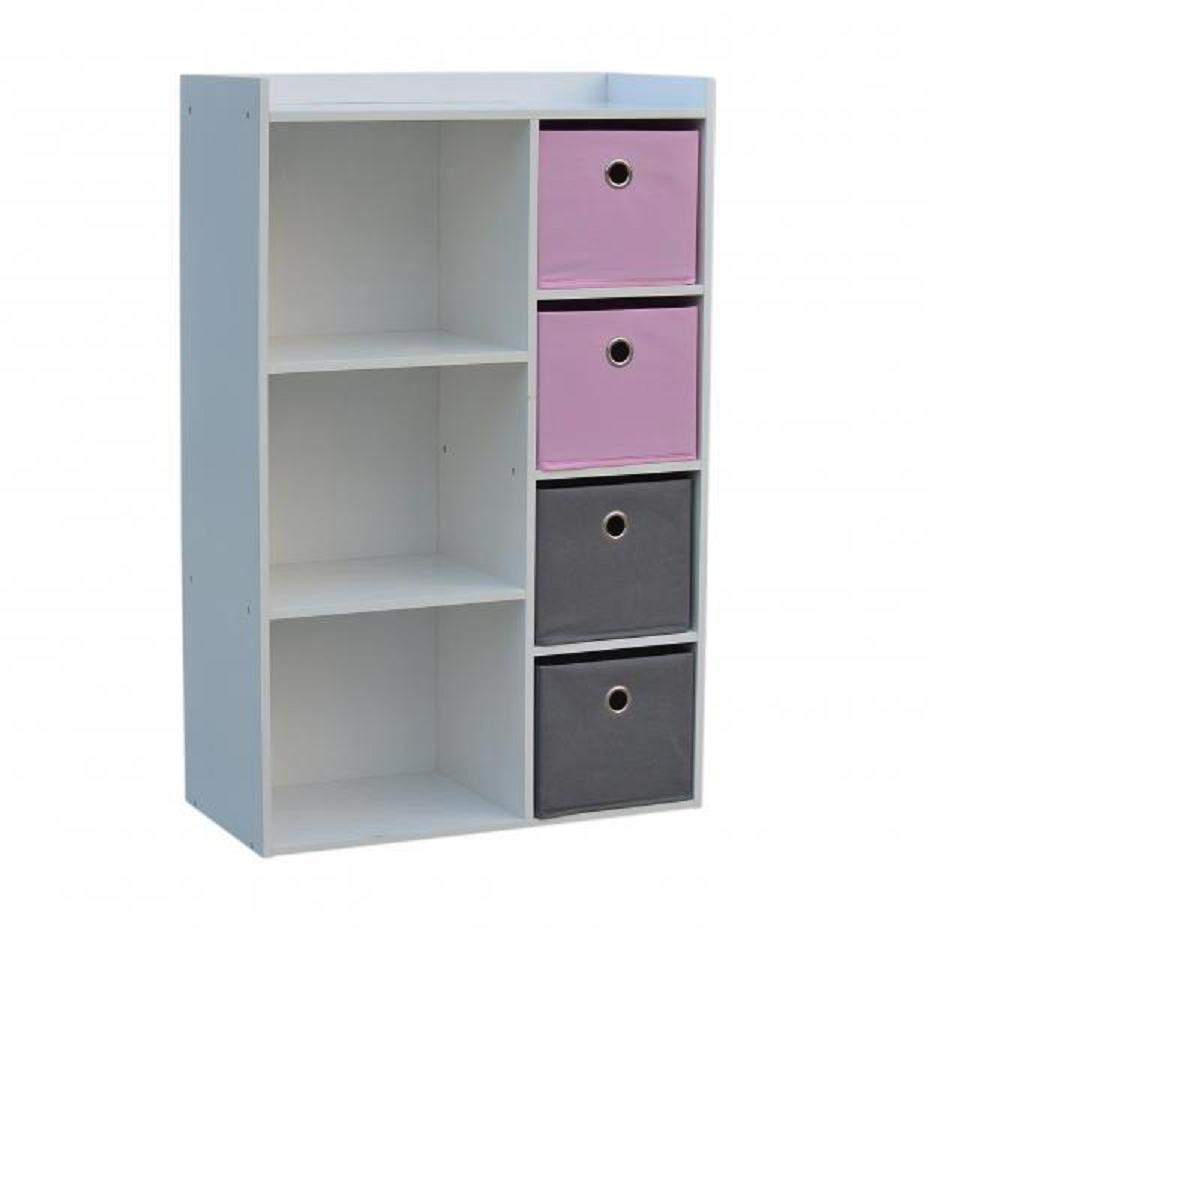 armoire de rangement enfants fille 3 niches 4 tiroirs rose gris meuble de ran ebay. Black Bedroom Furniture Sets. Home Design Ideas